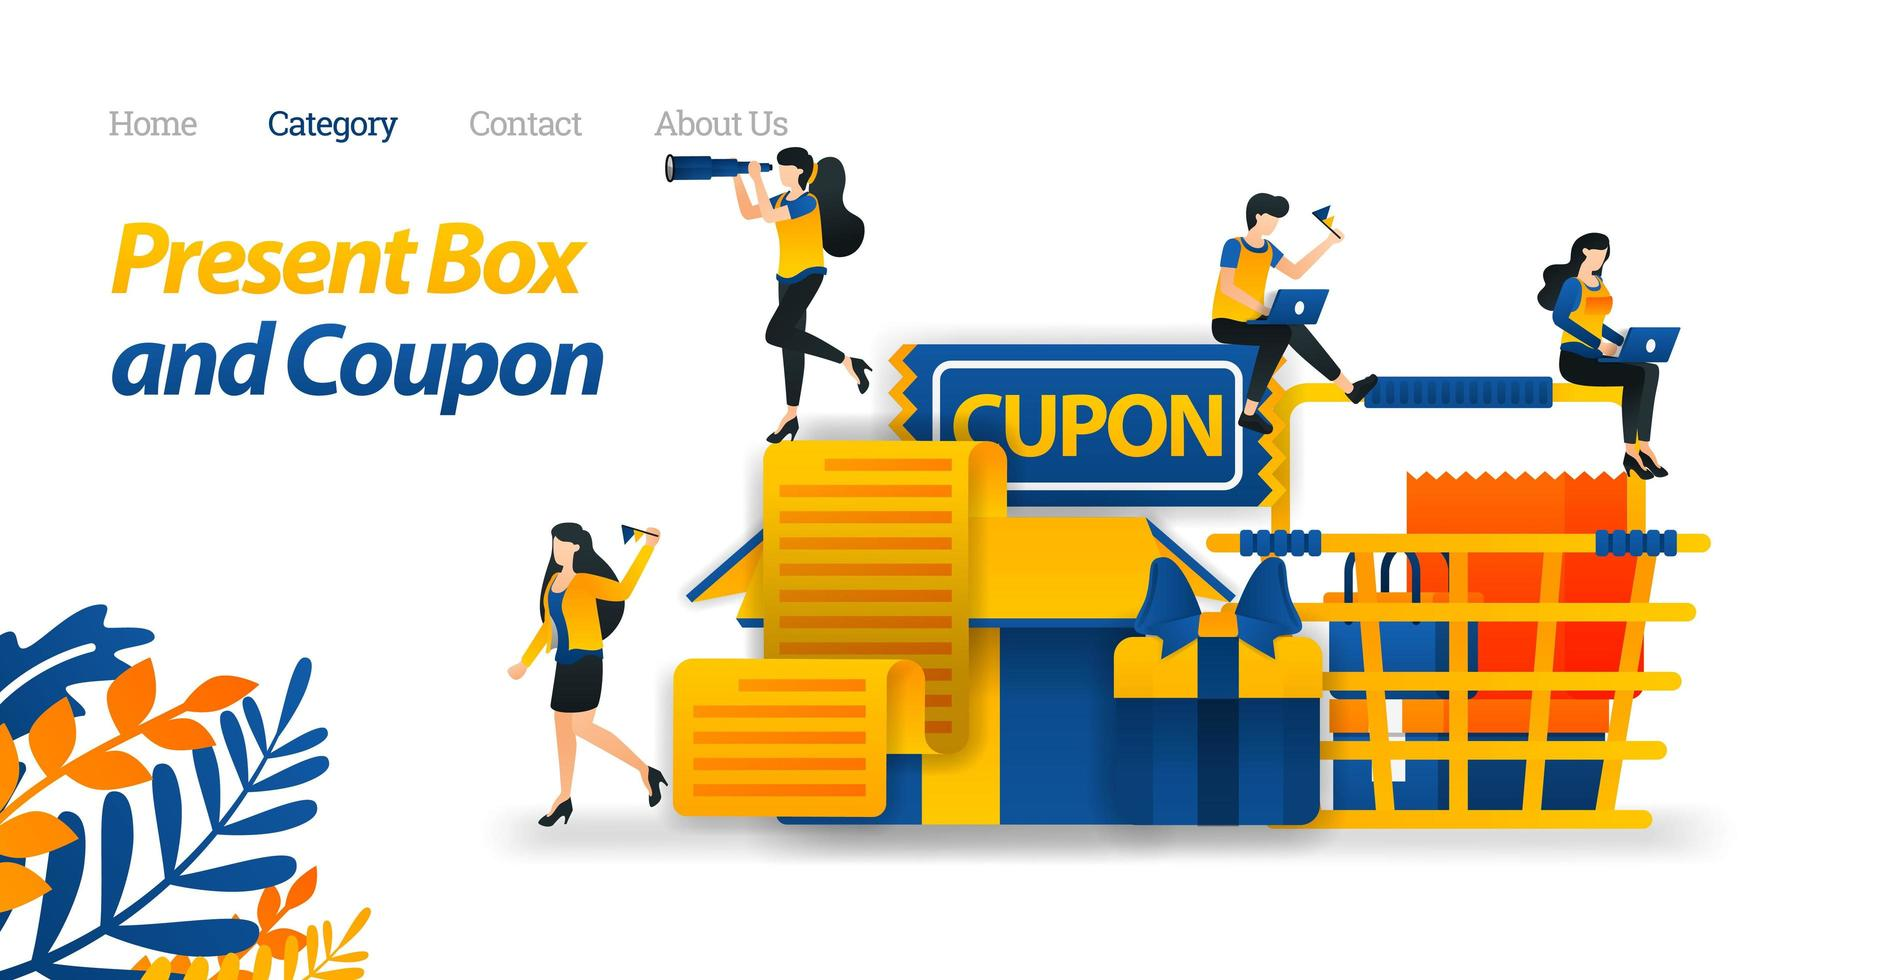 Present Box Designs With Various Accessories, Gift Coupons and Shopping cart. Vector Illustration, Flat Icon Style Suitable for Web Landing Page, Banner, Flyer, Sticker, Wallpaper, Card, Background